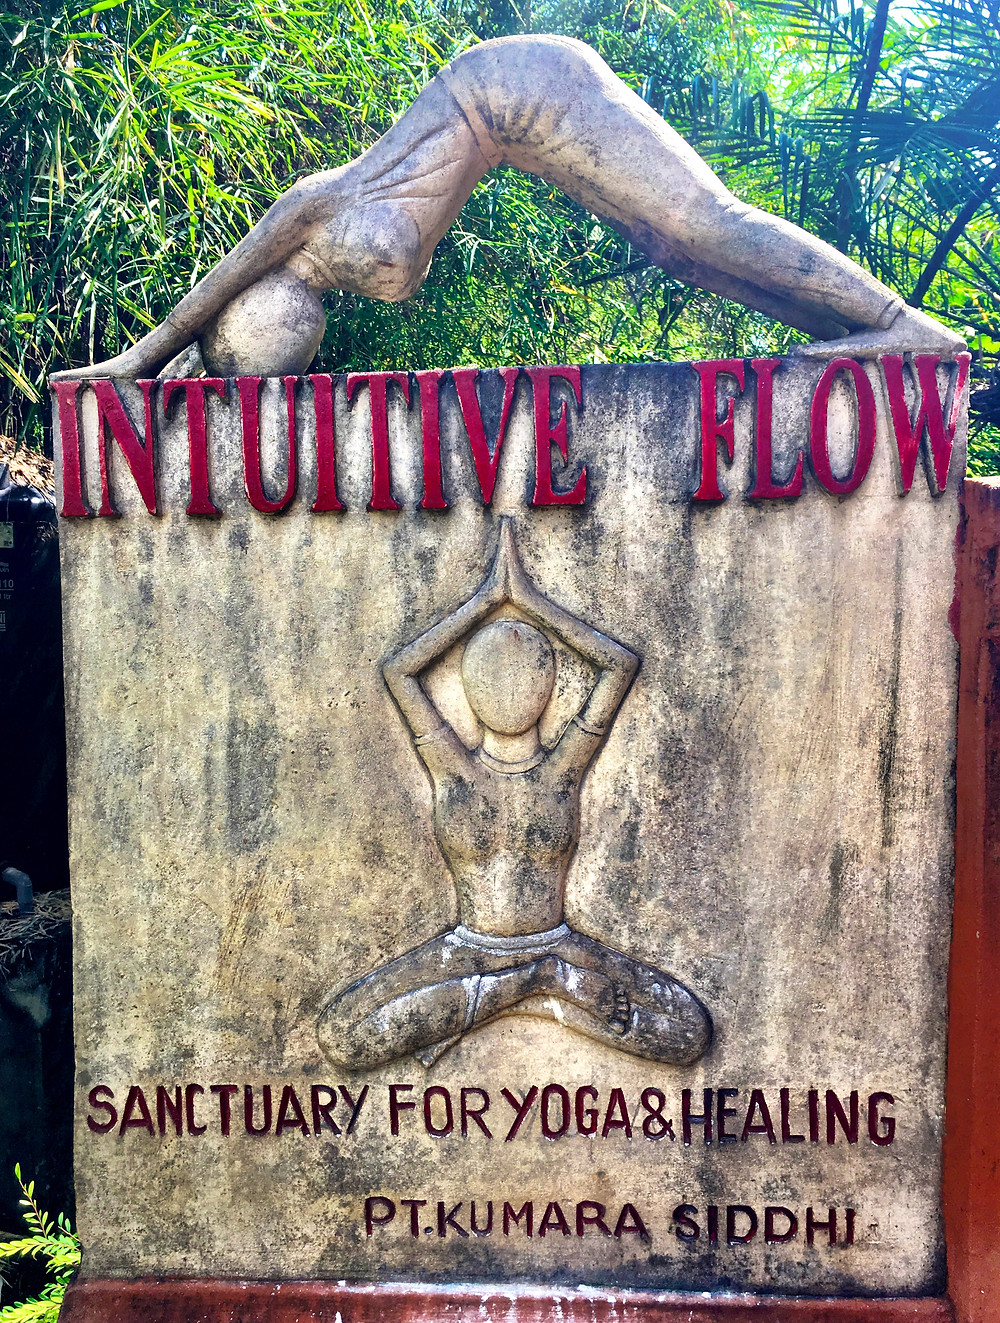 Intuitive Flow. Bra namn, traditionell yoga.